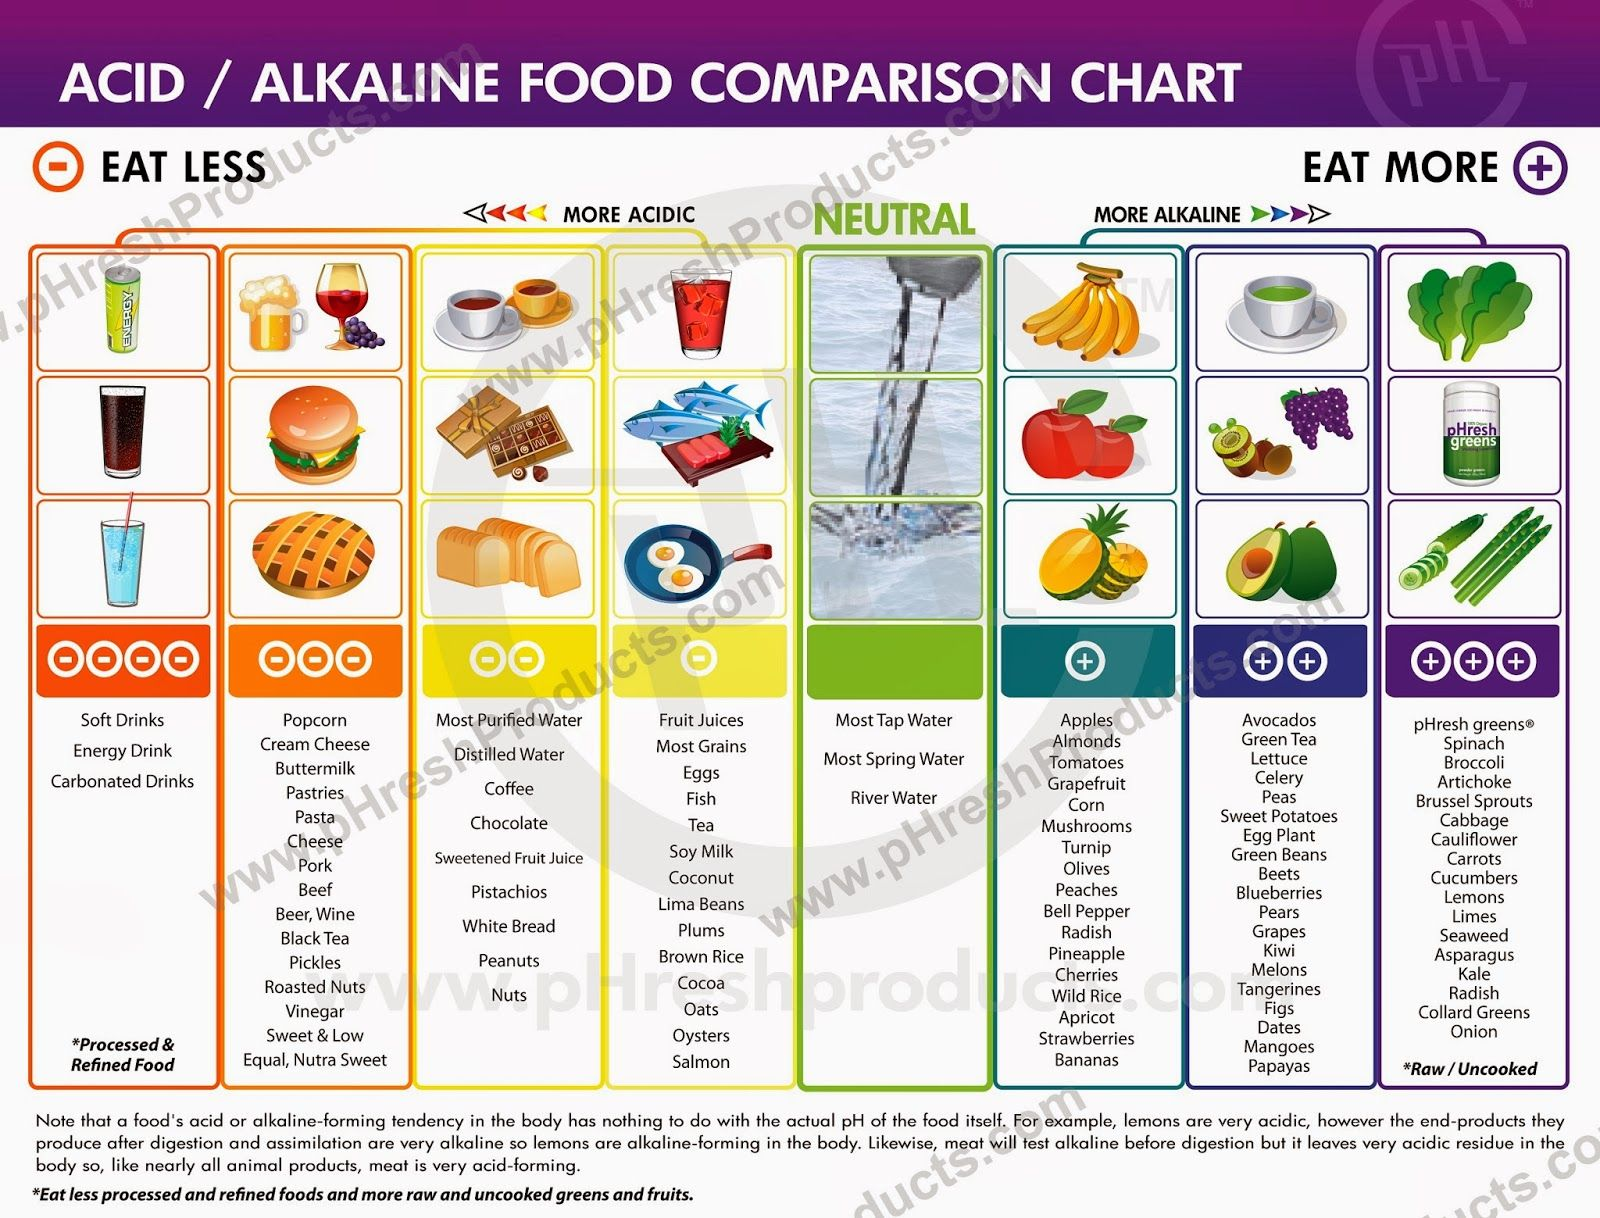 My health care acid alkaline food comparison chart uncorked